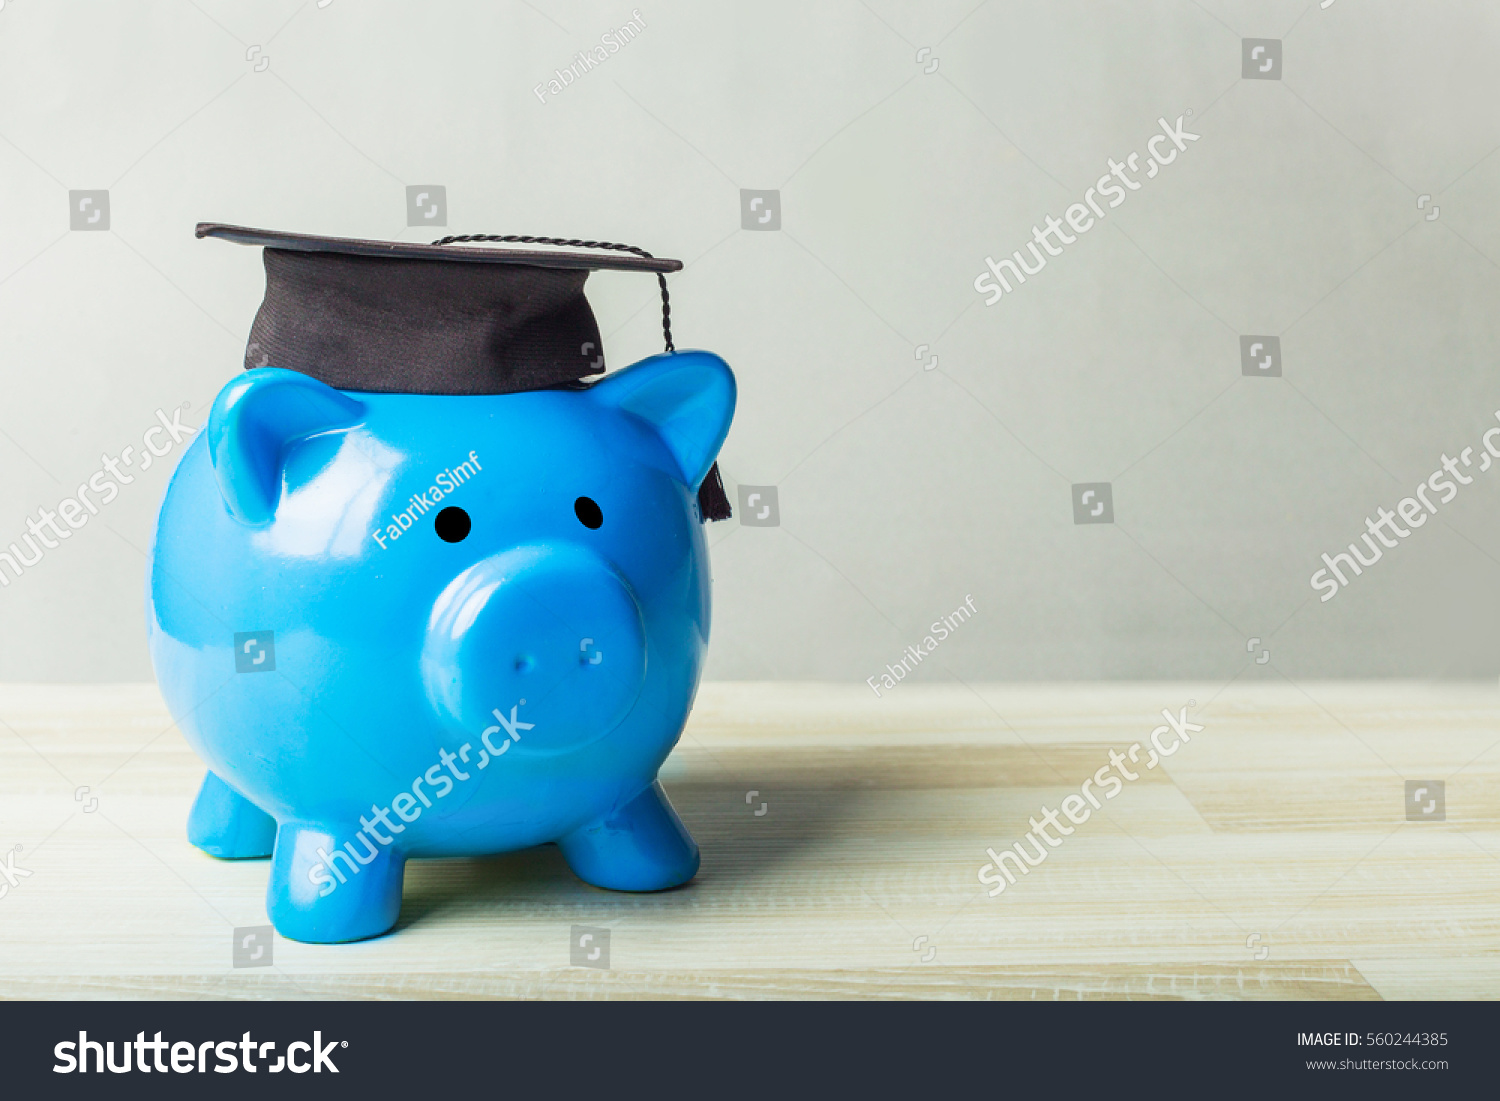 college graduate student diploma piggy bank stock photo  college graduate student diploma piggy bank stock photo 560244385 shutterstock